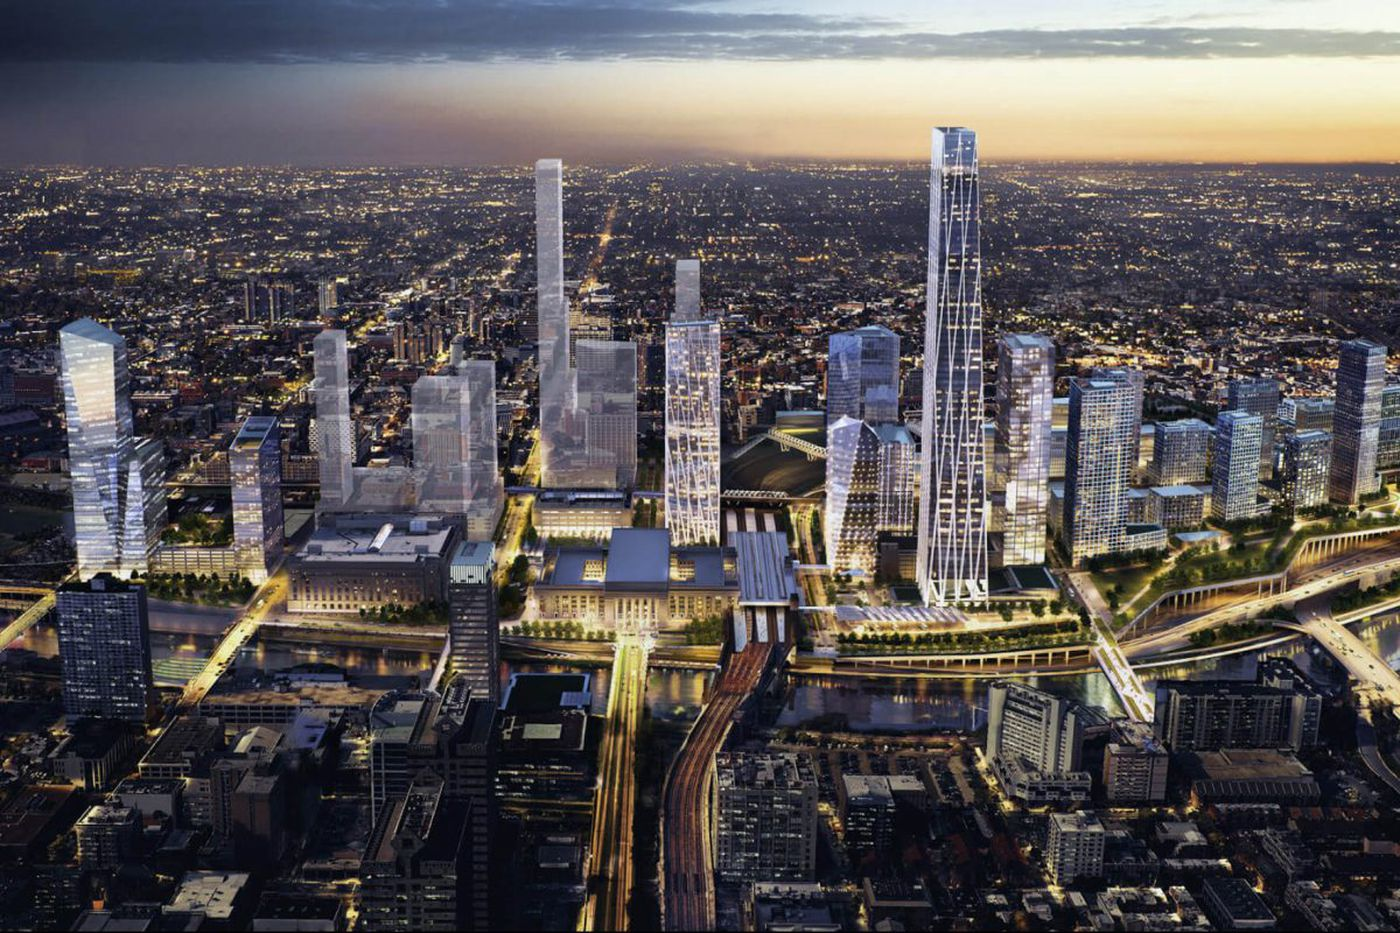 Brandywine moves forward with land acquisitions for Schuylkill Yards plan